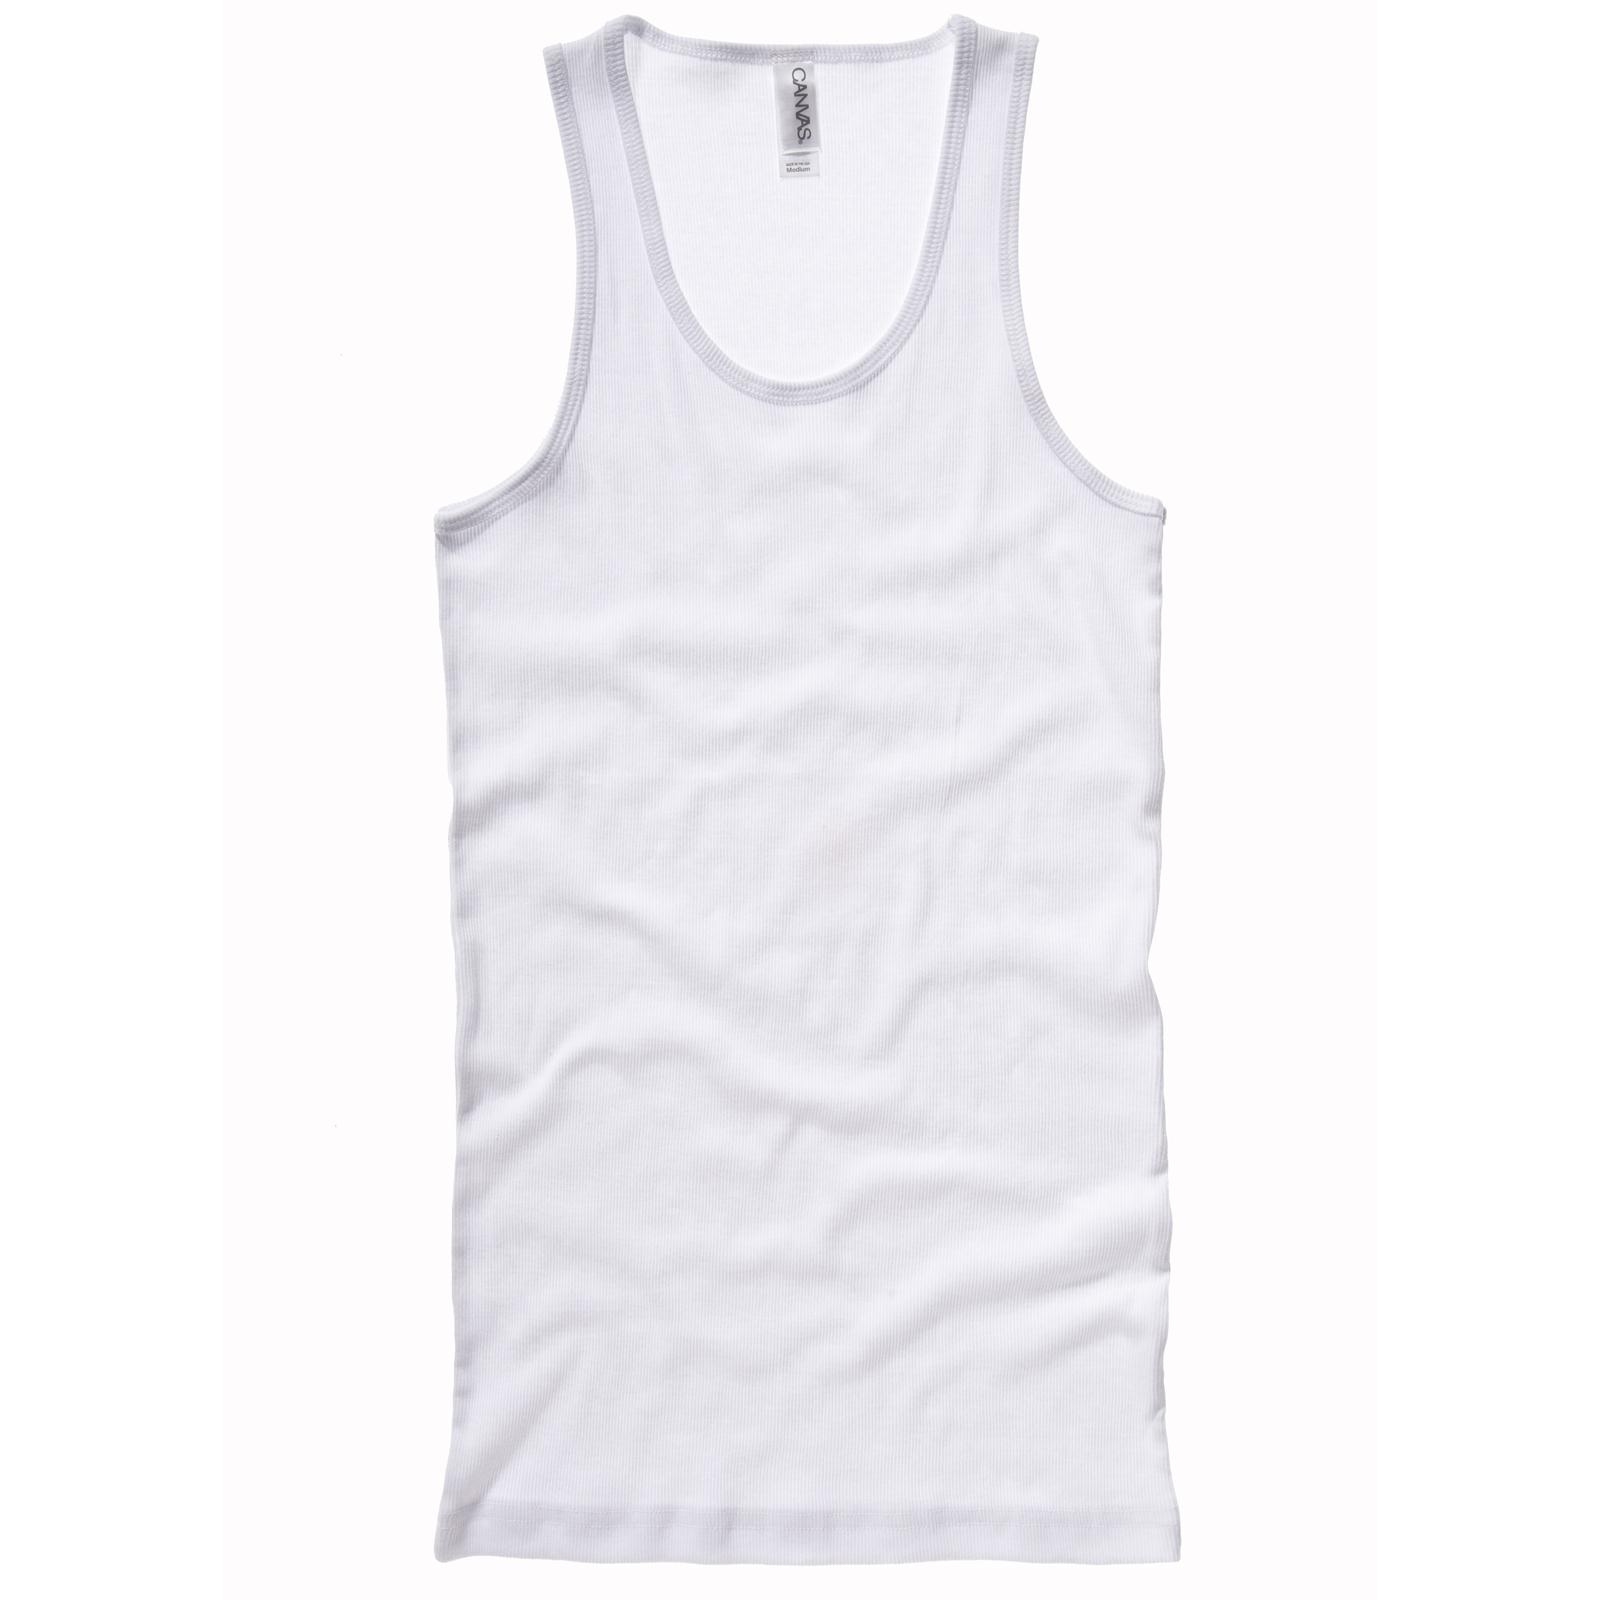 Vests: Free Shipping on orders over $45 at allshop-eqe0tr01.cf - Your Online Vests Store! Get 5% in rewards with Club O!